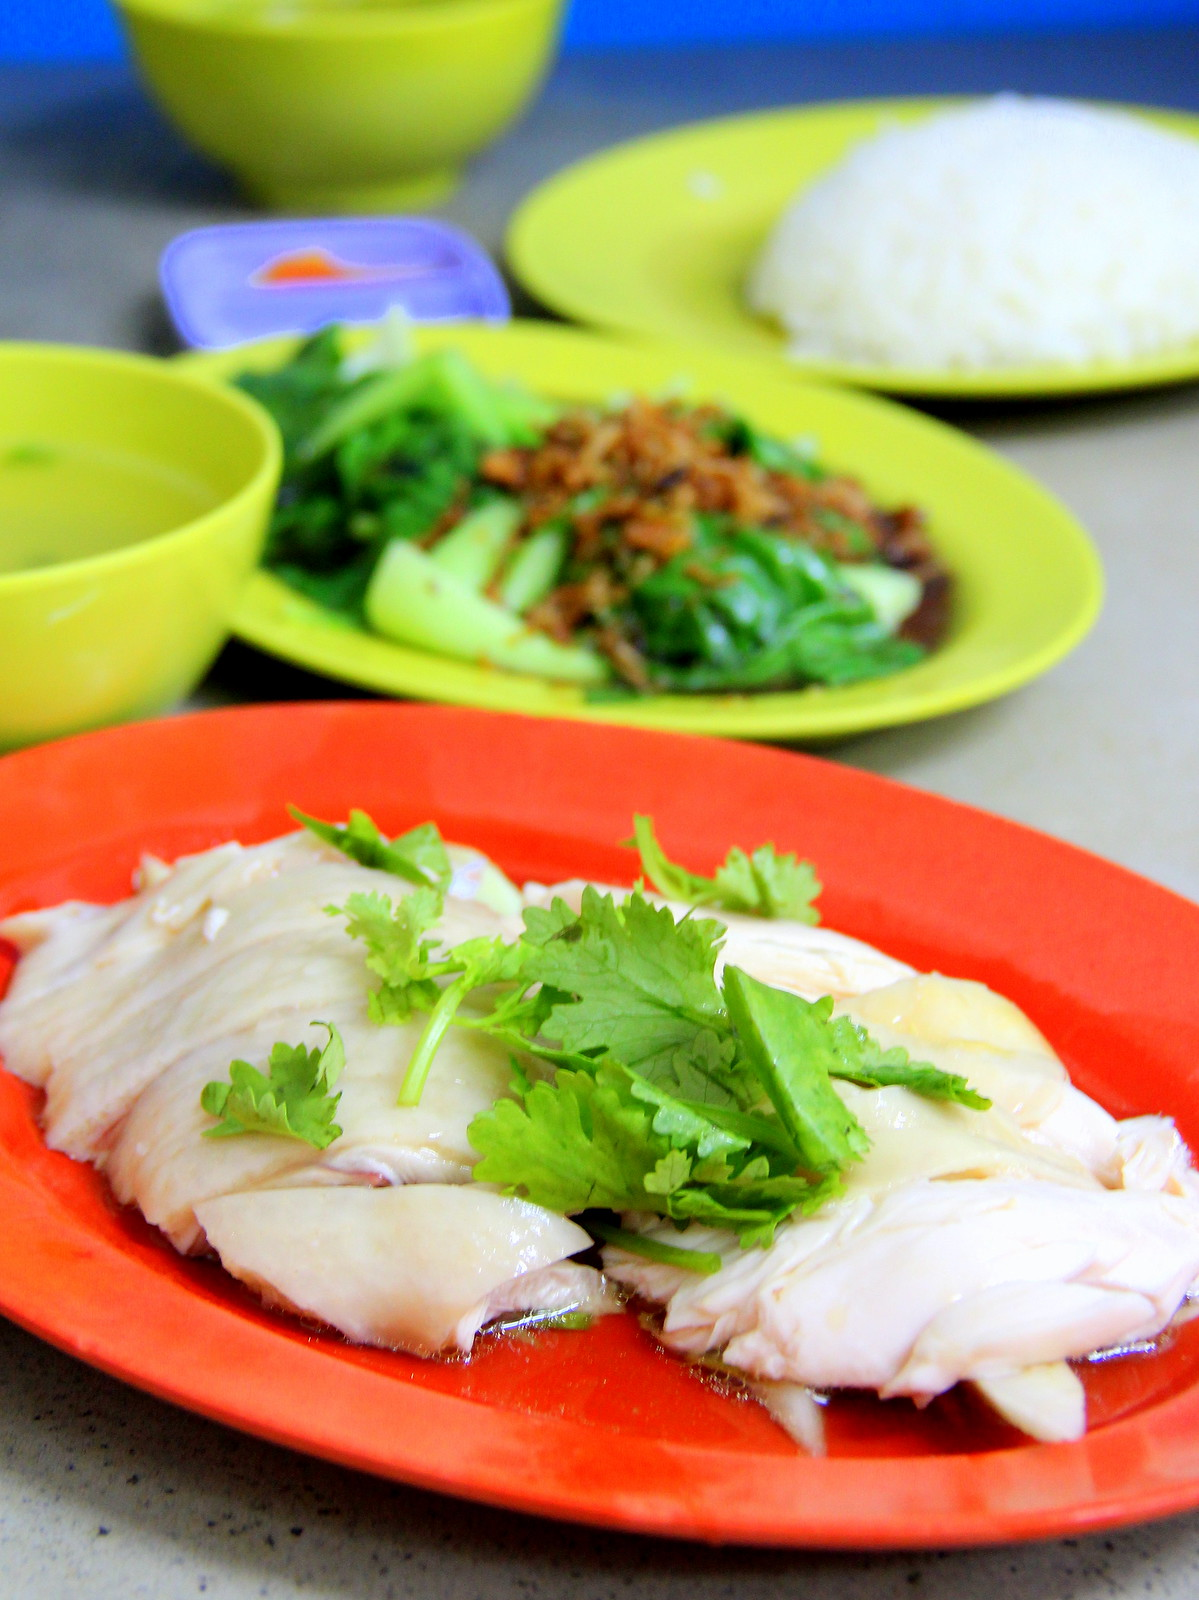 Orchard Road: Hainanese Chicken Rice